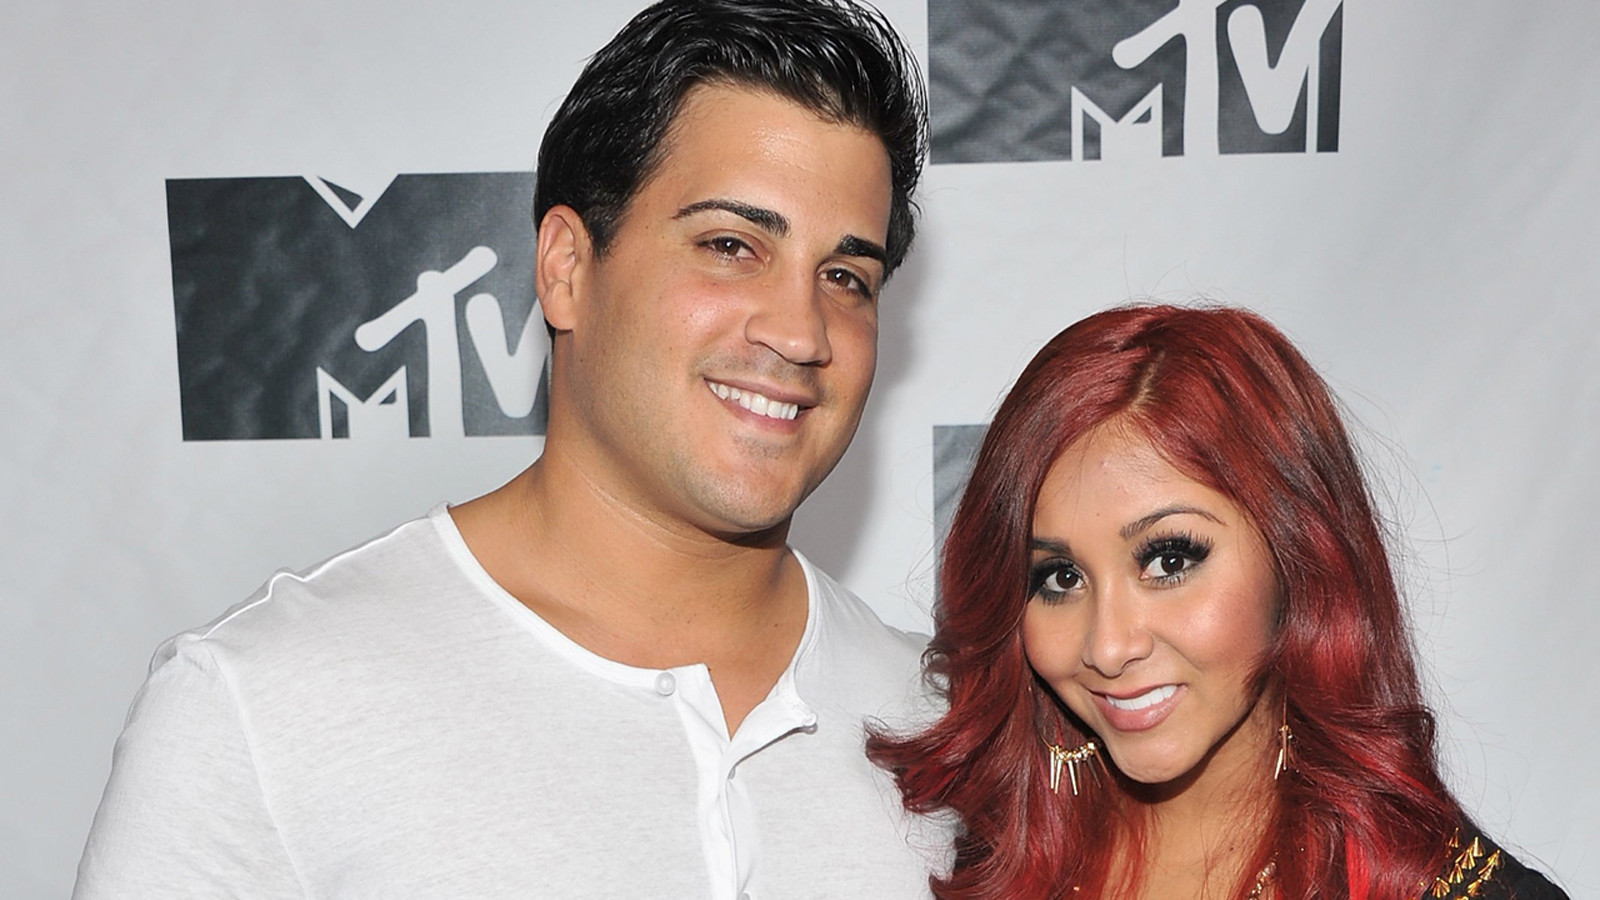 Snooki Marries Jionni LaValle In A Gatsby Themed Wedding